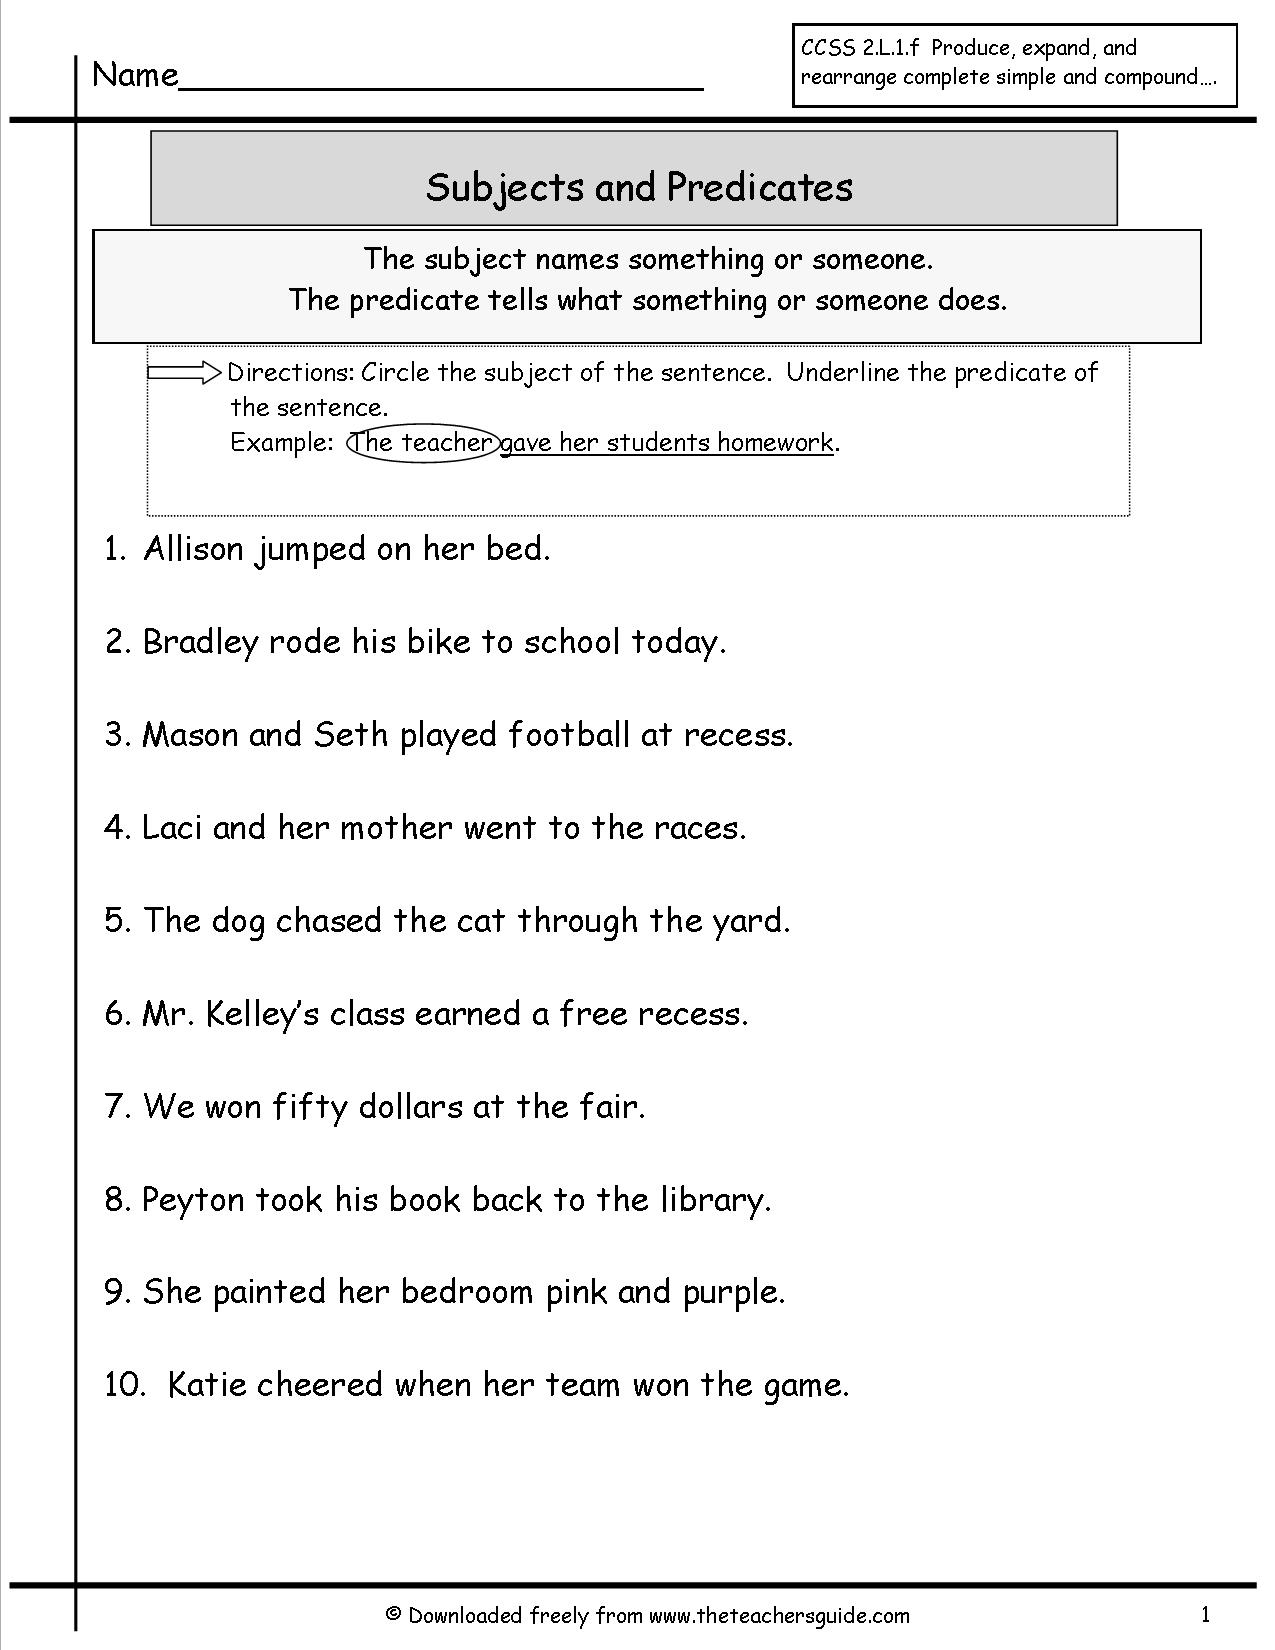 Great Compromise Worksheet